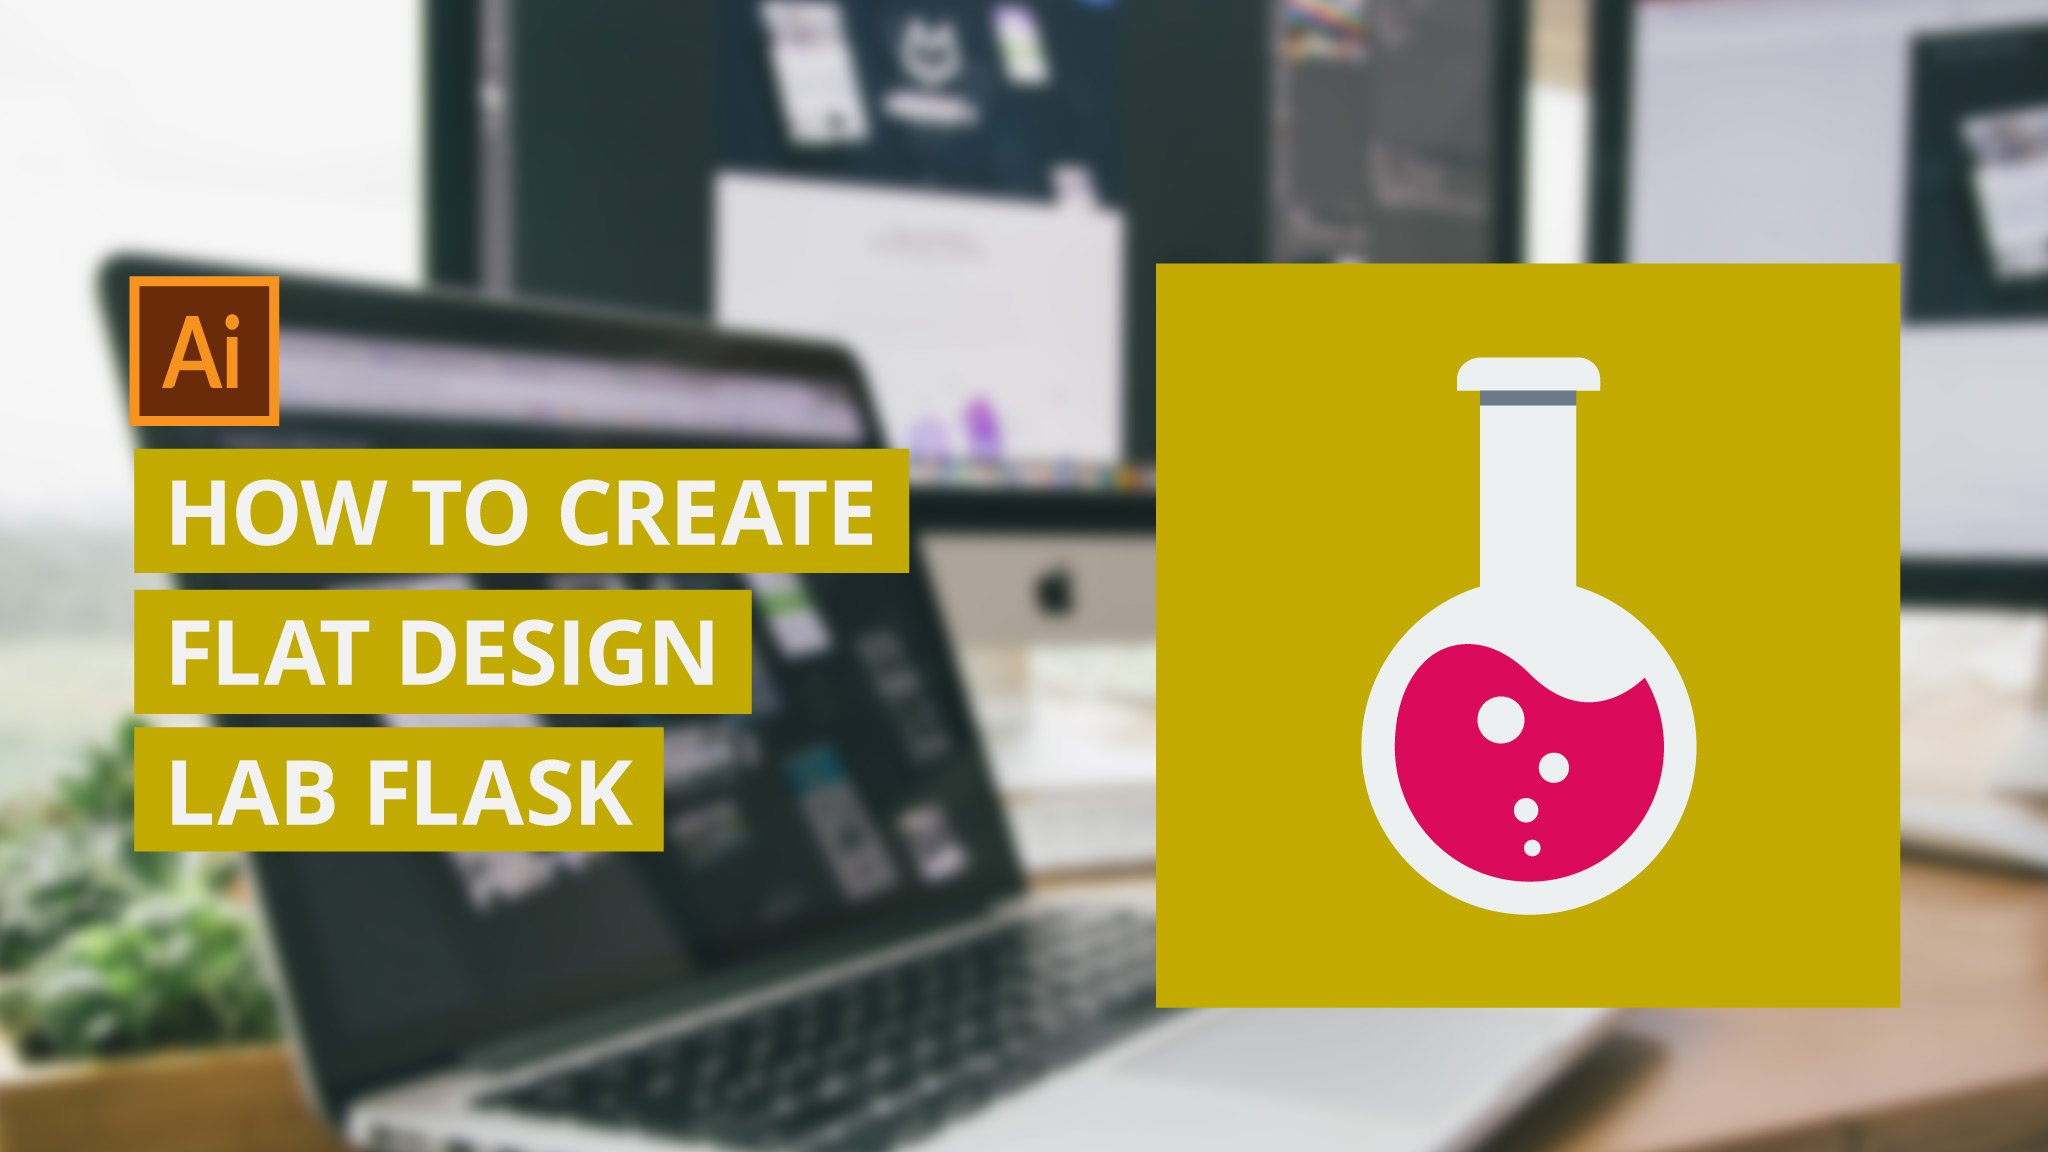 Flat Design: How To Create A Lab Flask Flat Icon in Illustrator